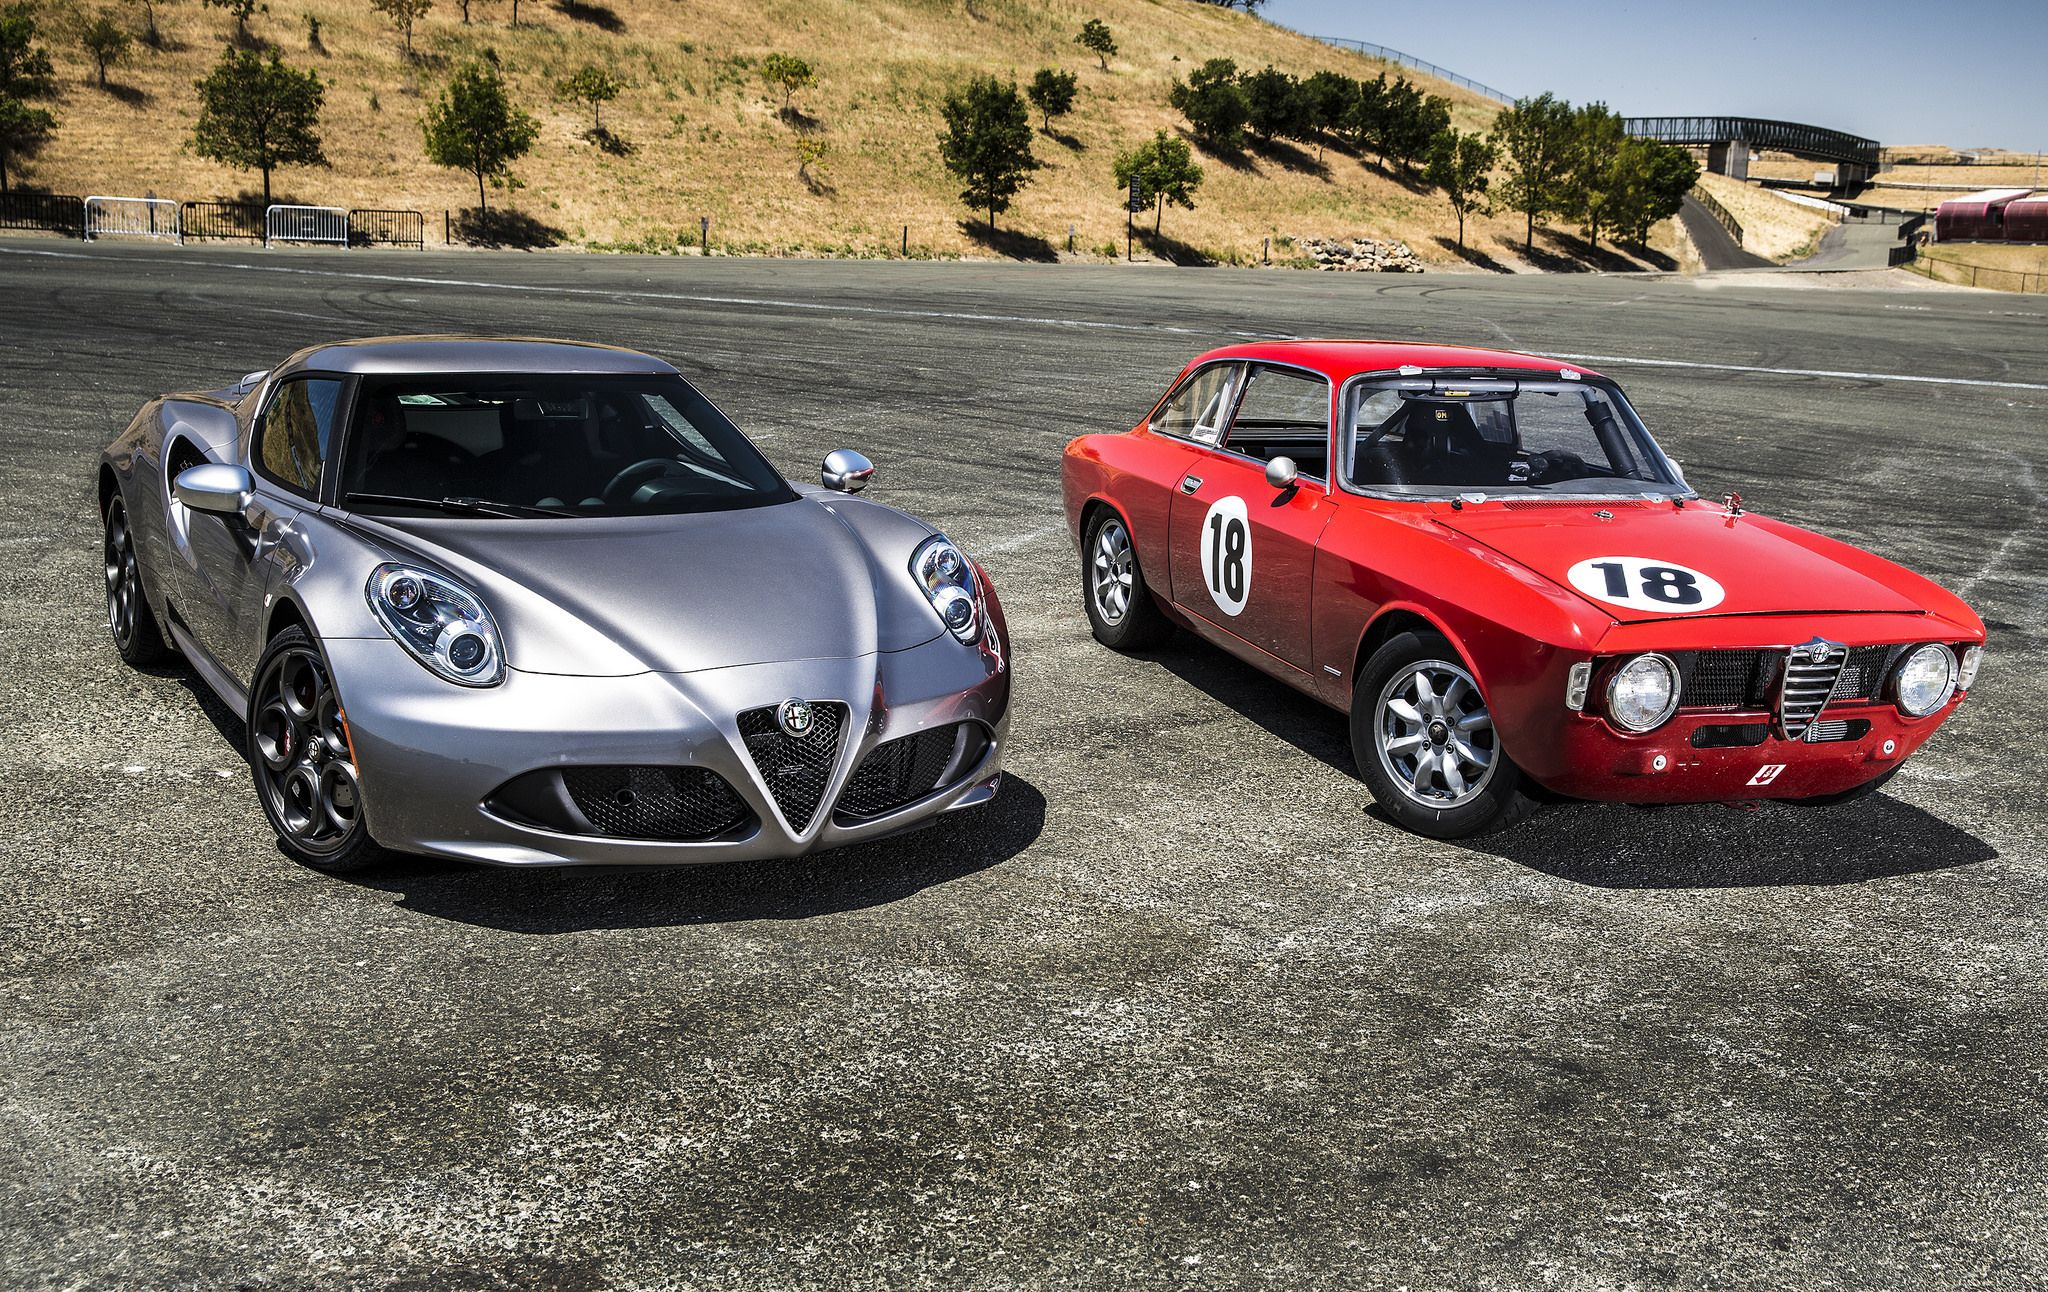 2015 Alfa Romeo 4C left and vintage Alfa Romeo GTV right